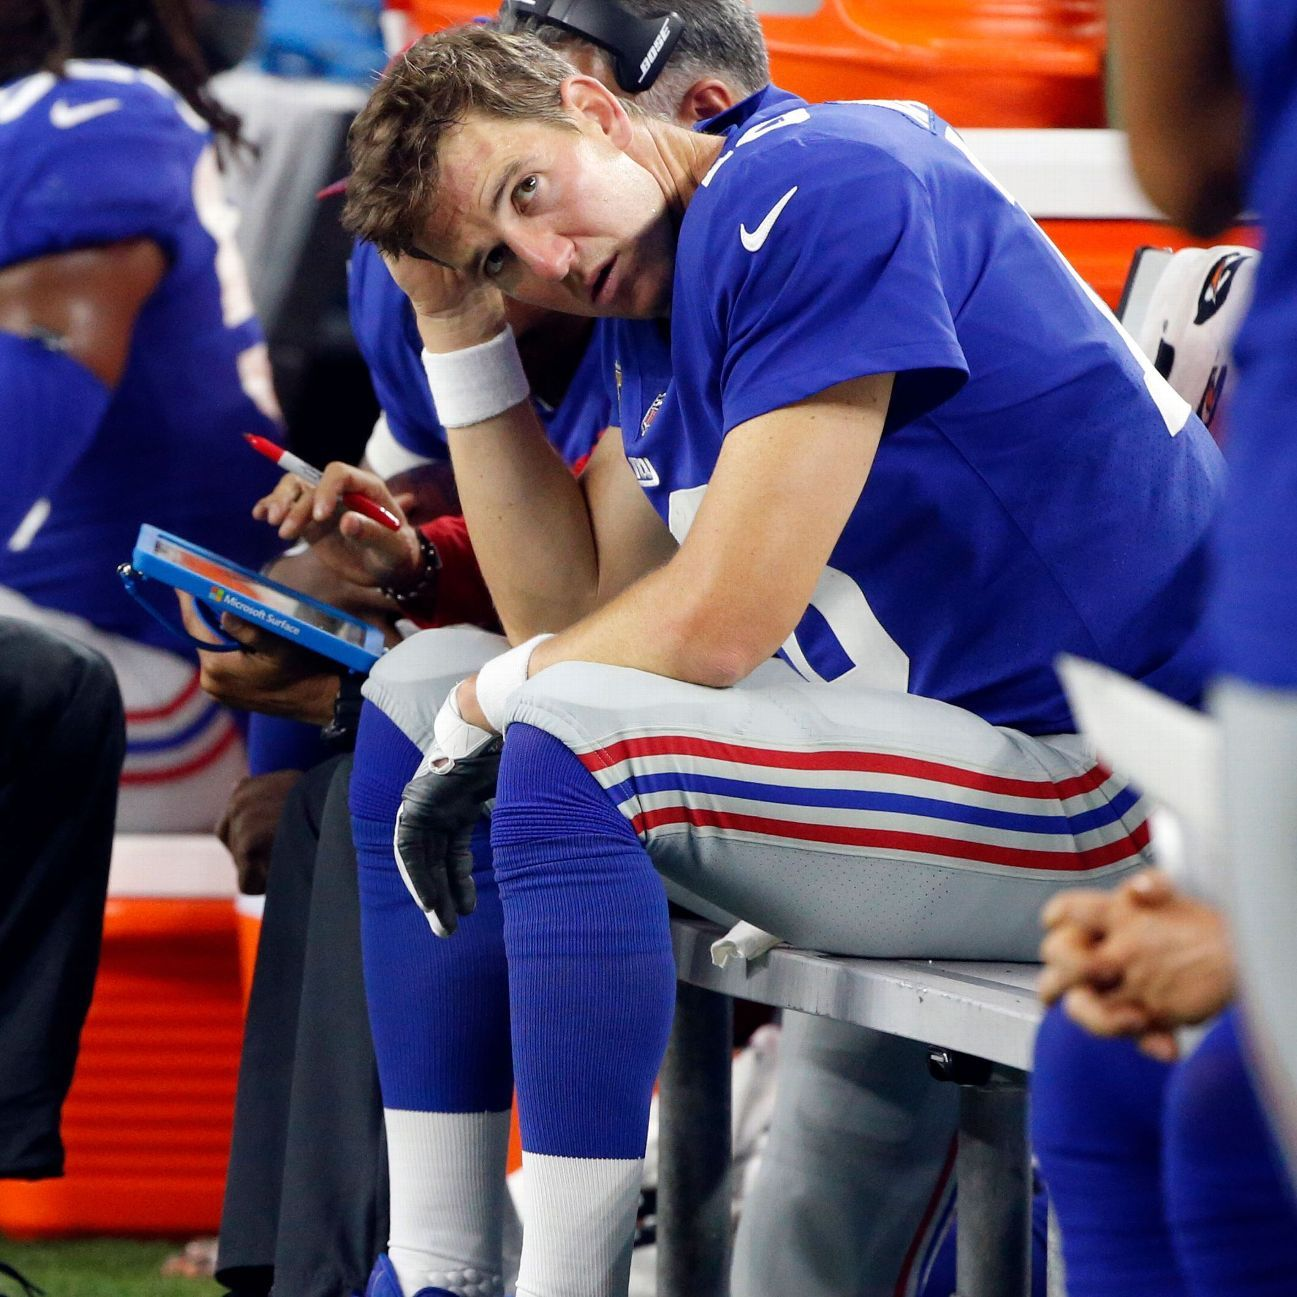 New York Giants To Start Quarterback Geno Smith Over Eli Manning This Week